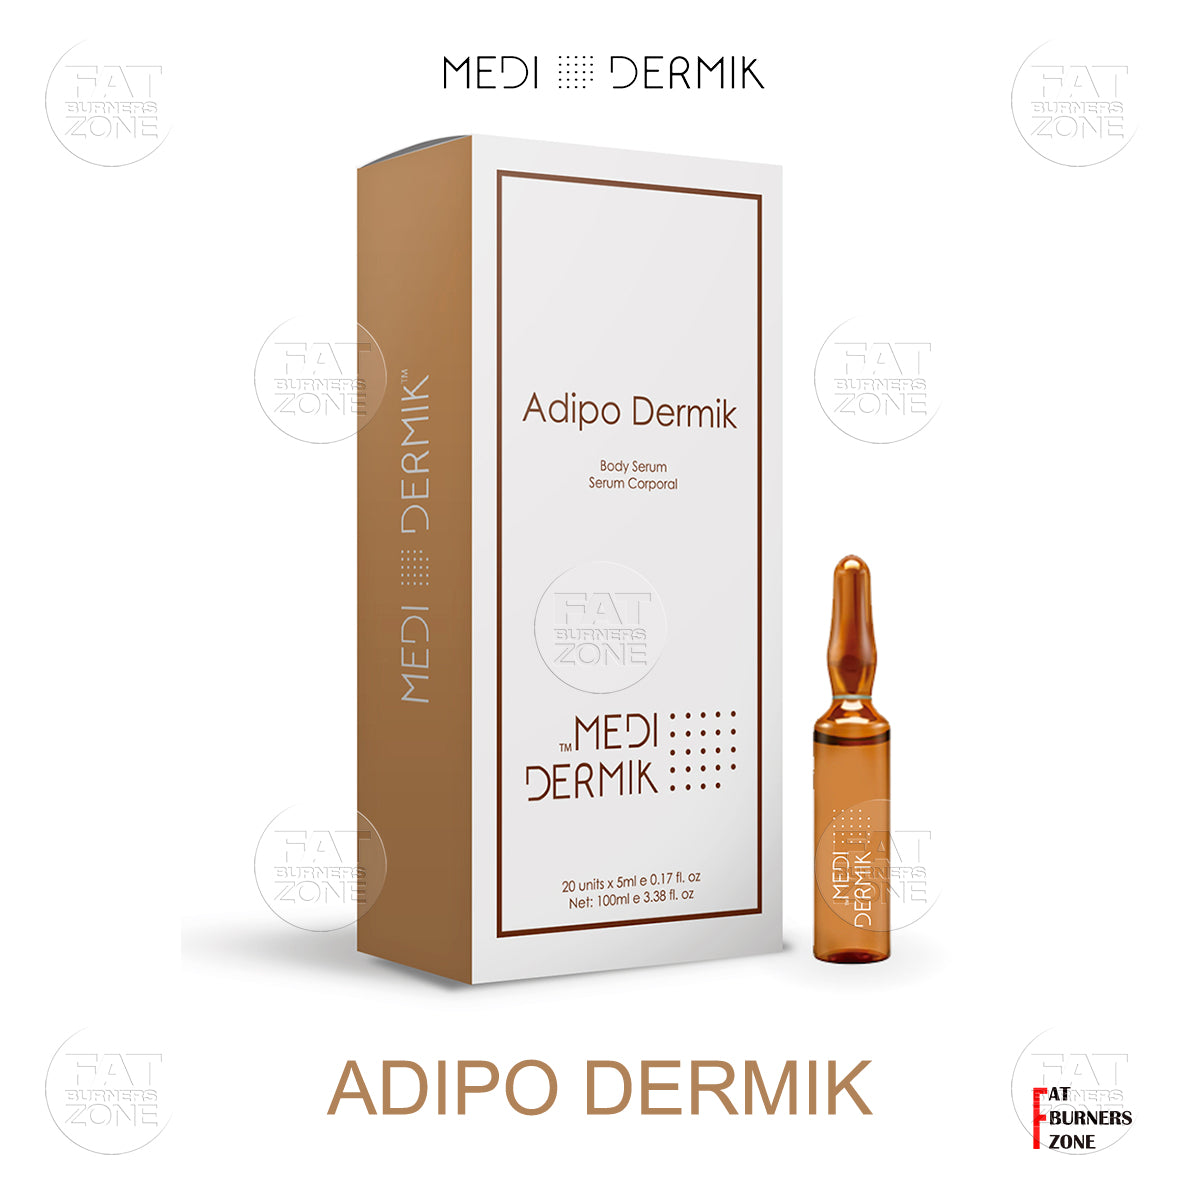 Adipo Dermik 100ml Anti-Cellulite Solution By Medidermik